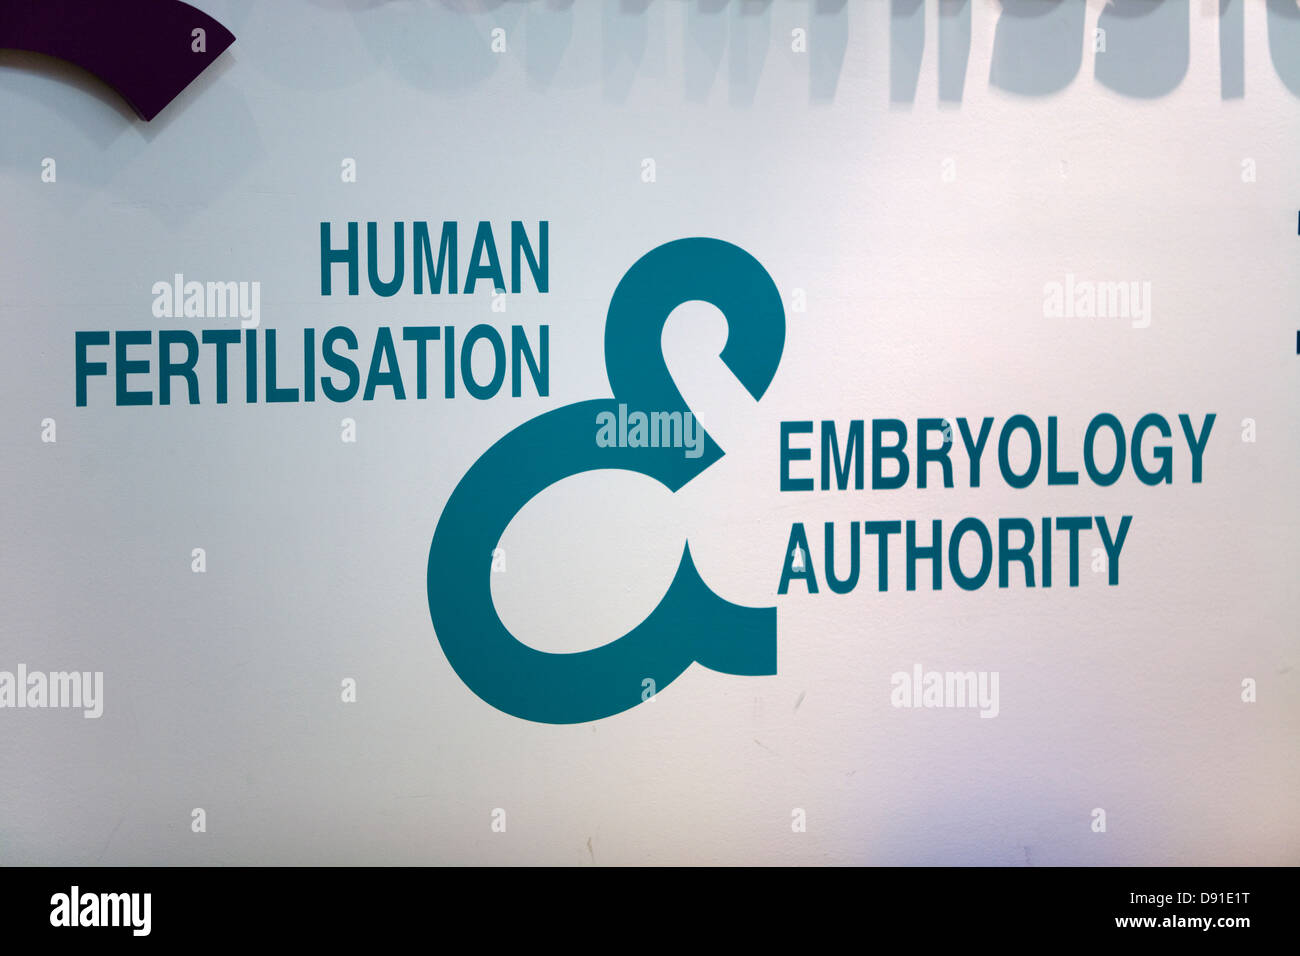 Human Fertilisation and Embryology Authority logo. UK. - Stock Image